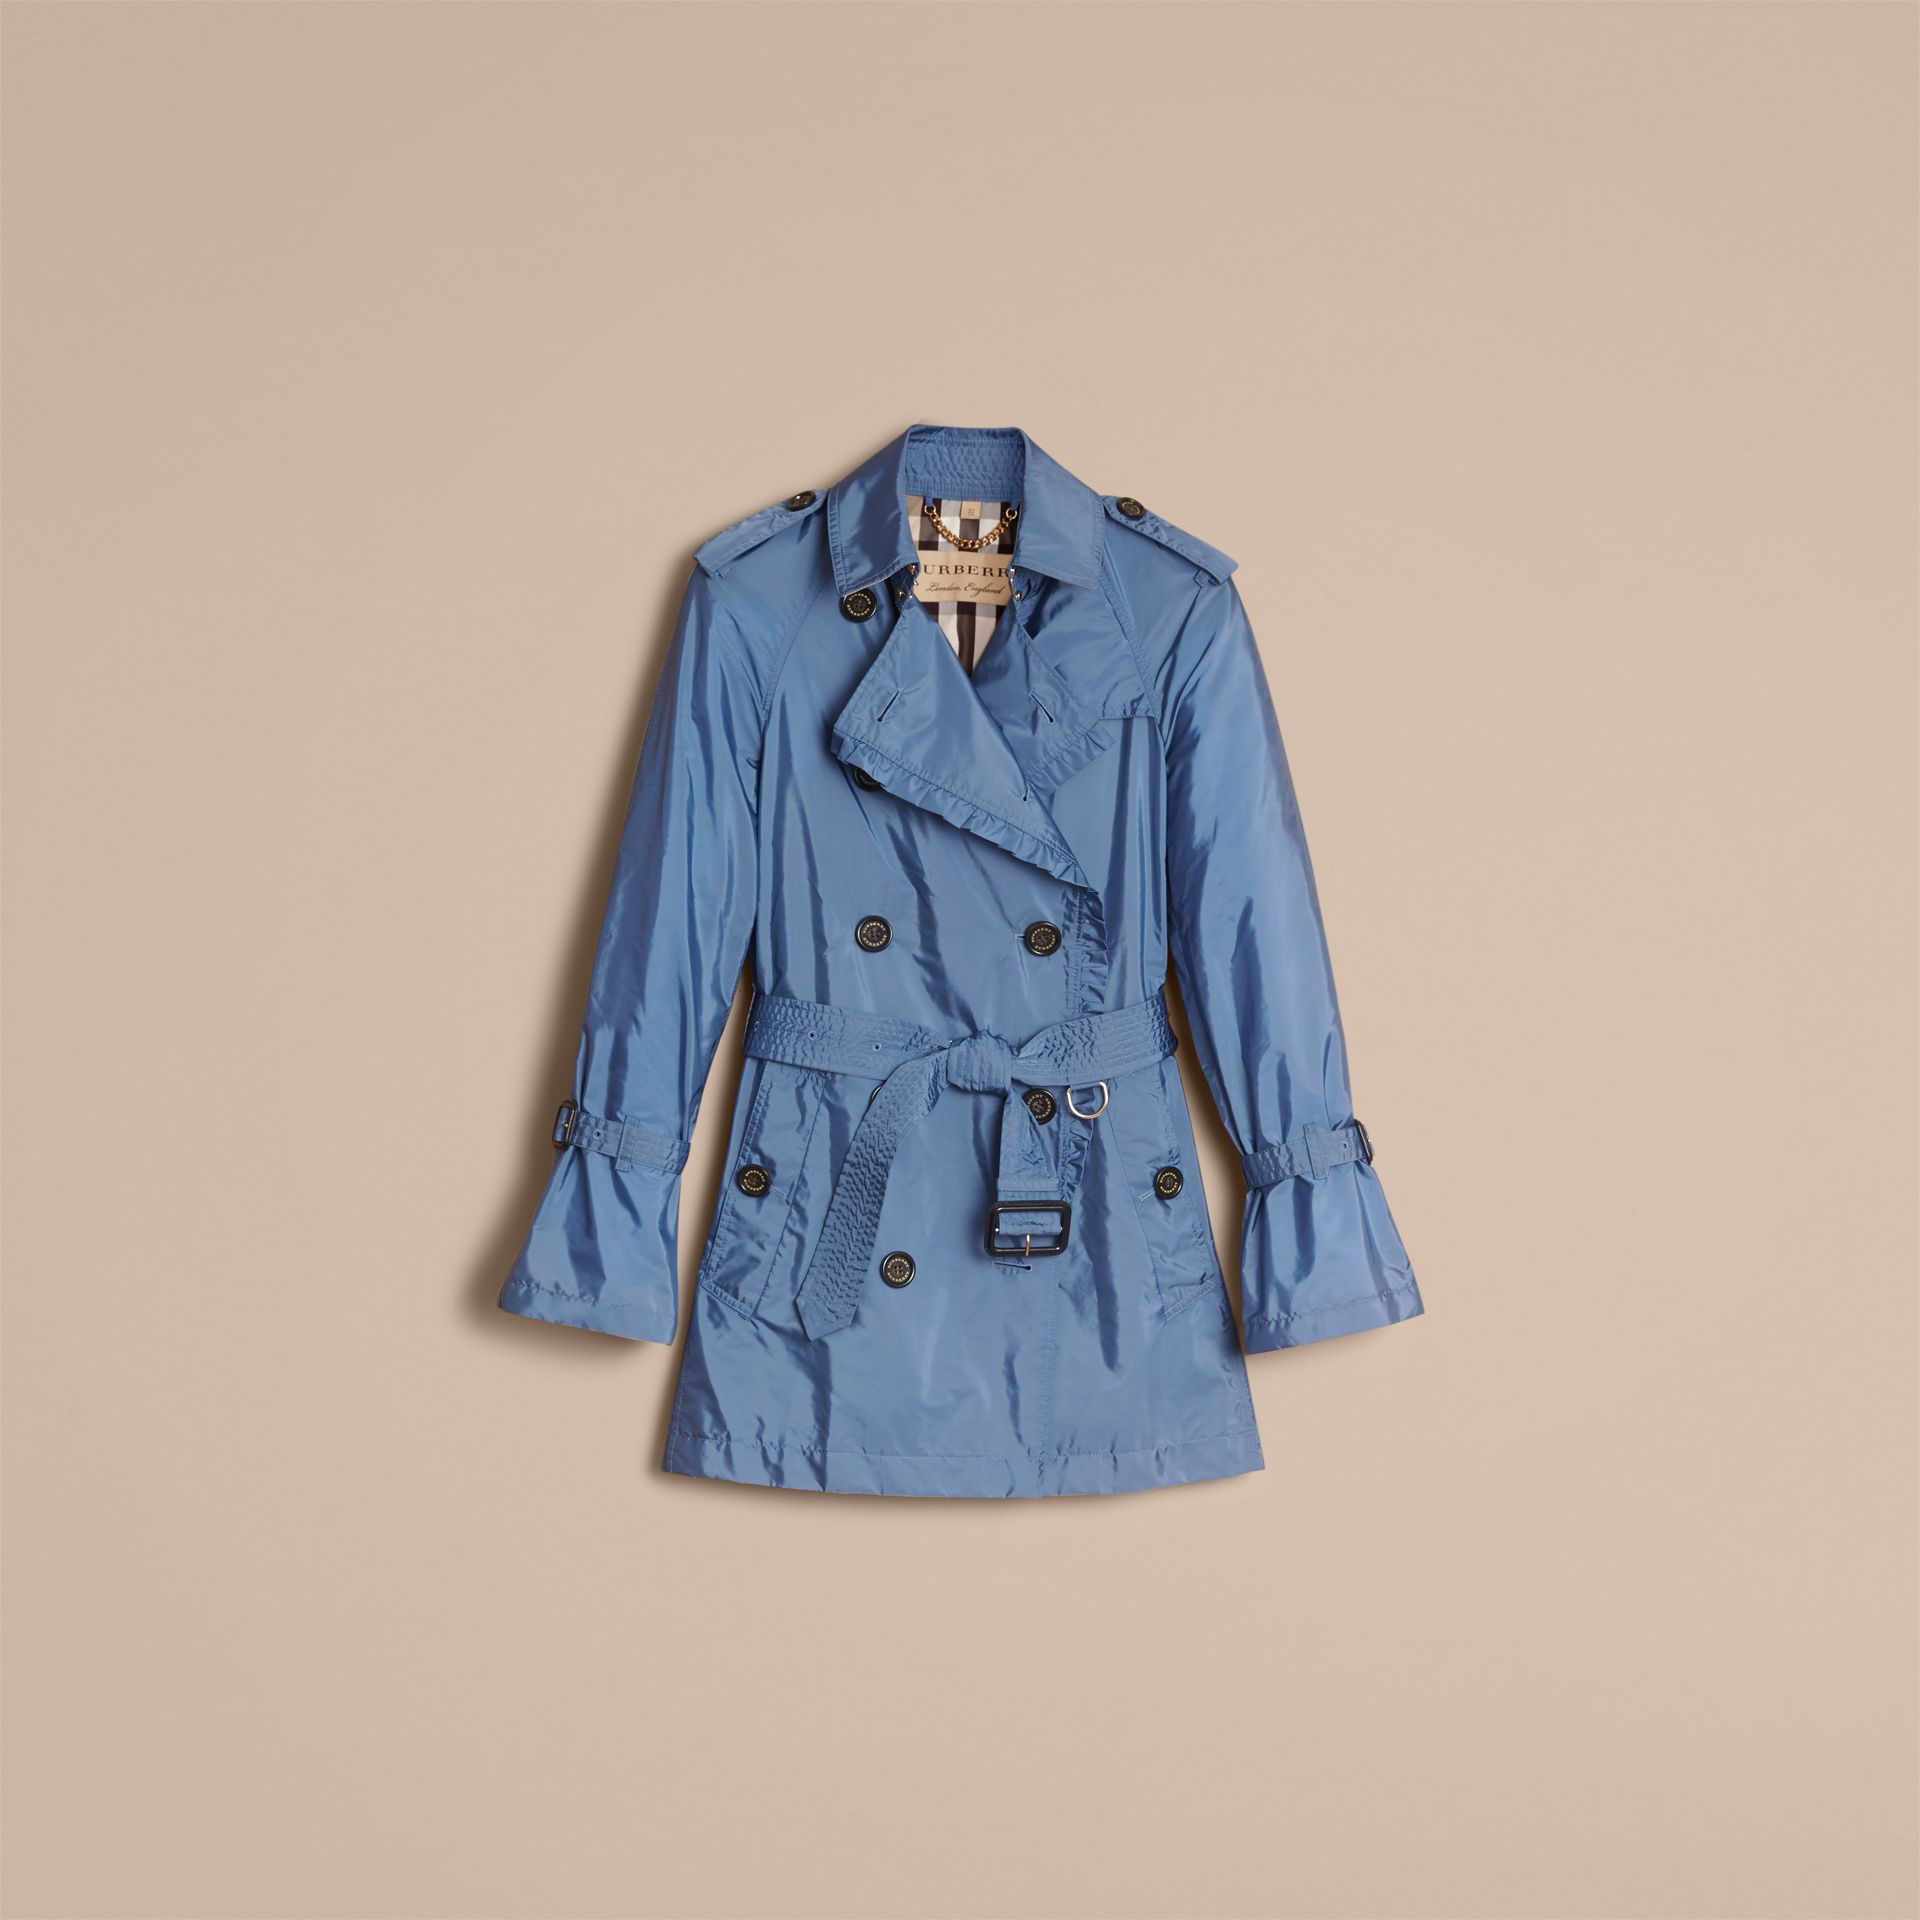 Packaway Ruffle Detail Showerproof Trench Coat in Lupin Blue - Women | Burberry - gallery image 4